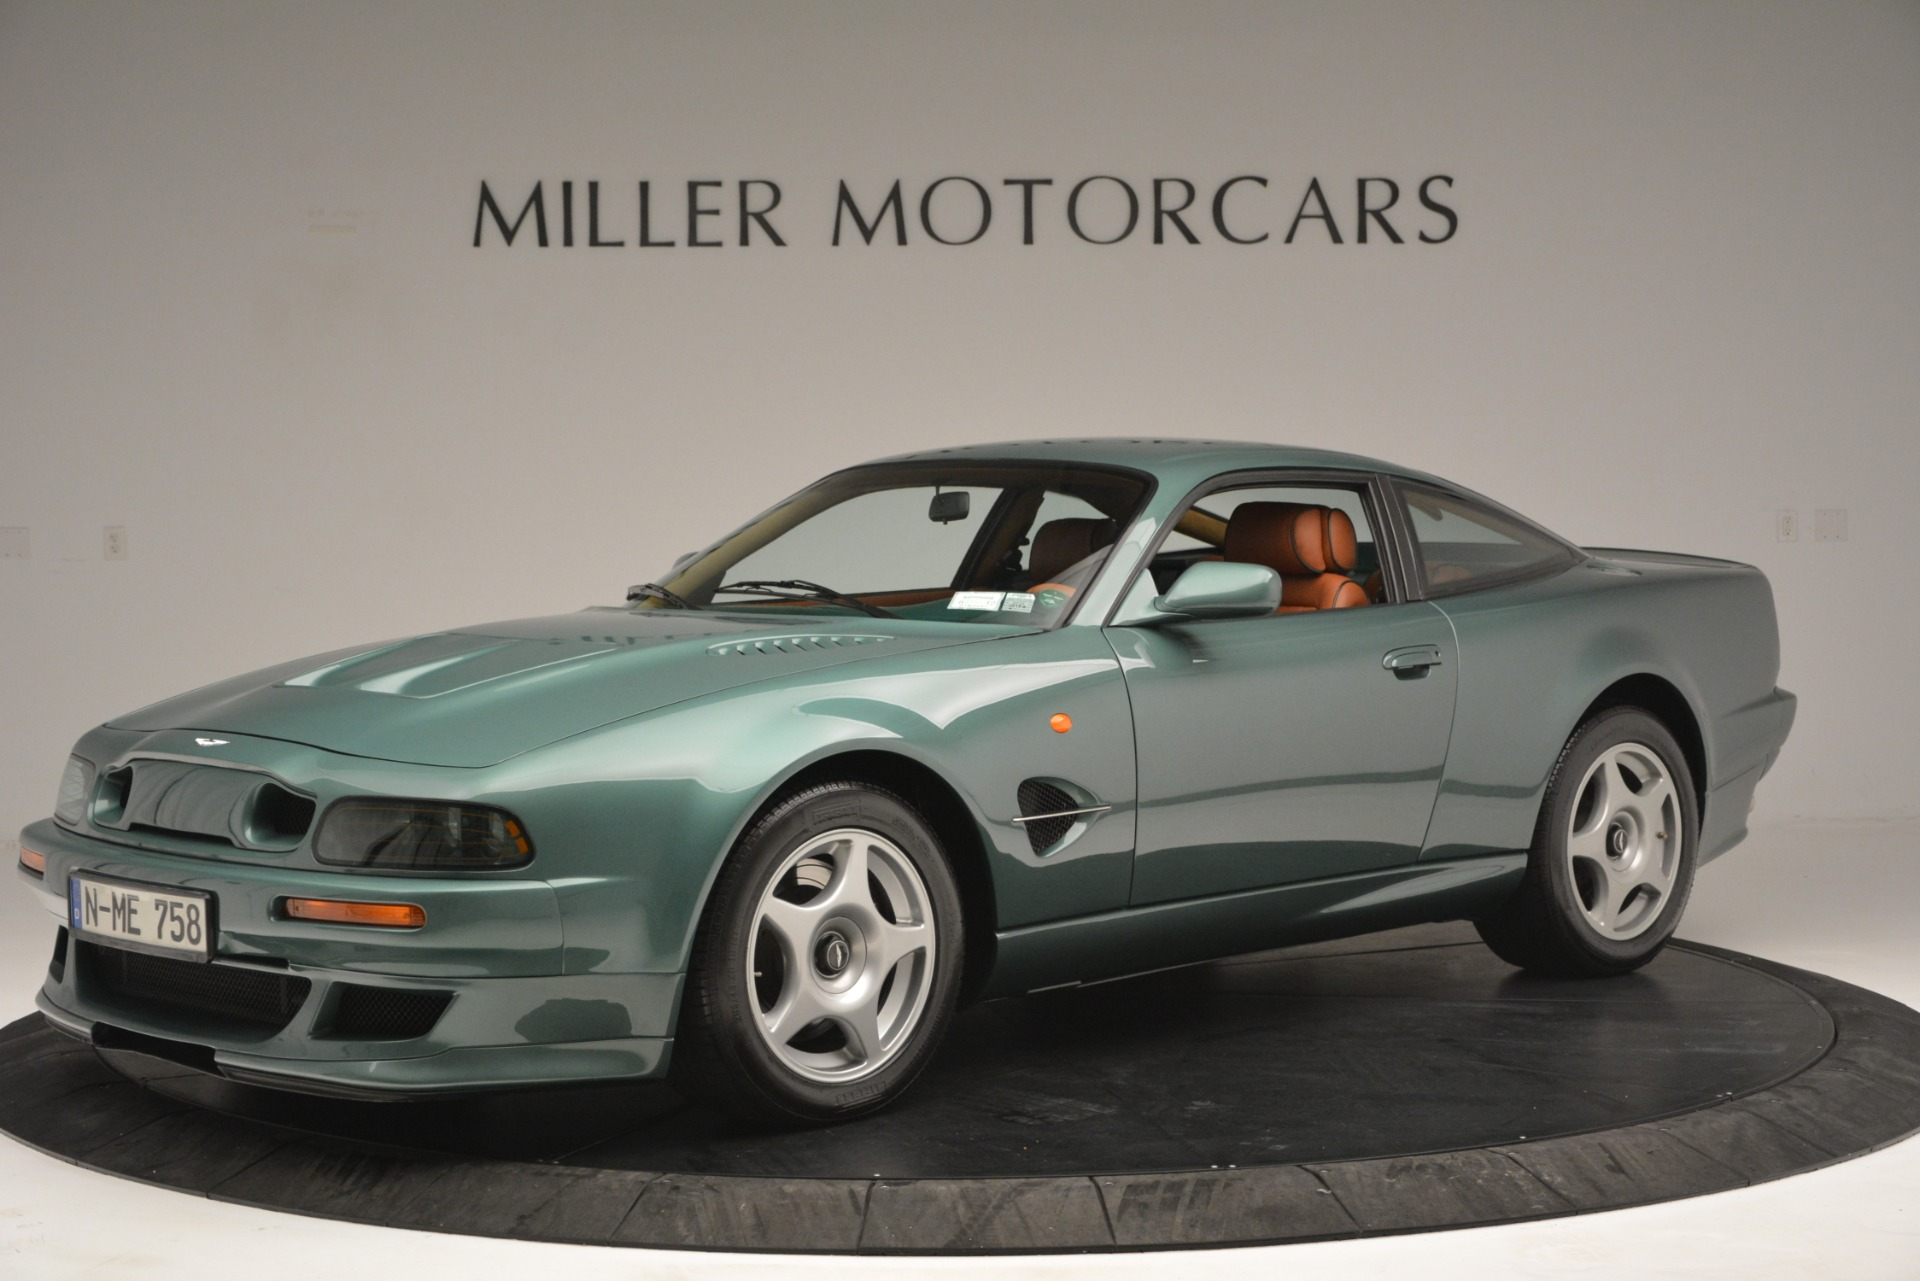 Used 1999 Aston Martin V8 Vantage Le Mans V600 Coupe For Sale In Westport, CT 2789_main